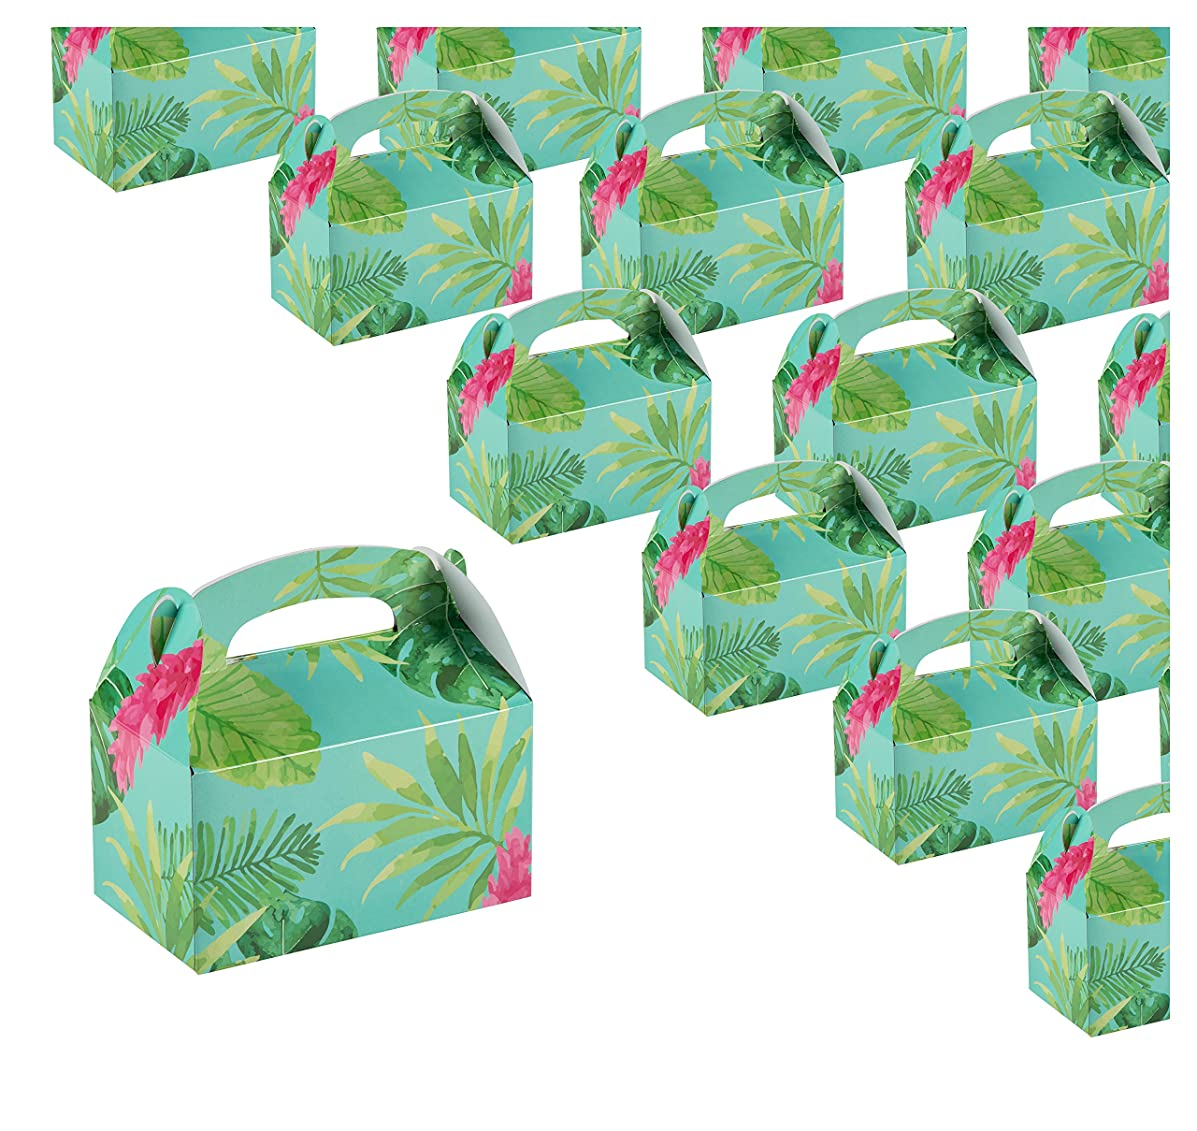 Treat Boxes - 24-Pack Paper Party Favor Boxes, Tropical Floral Design Goodie Boxes for Birthdays and Events, 2 Dozen Party Gable Boxes, 6 x 3.3 x 3.6 inches